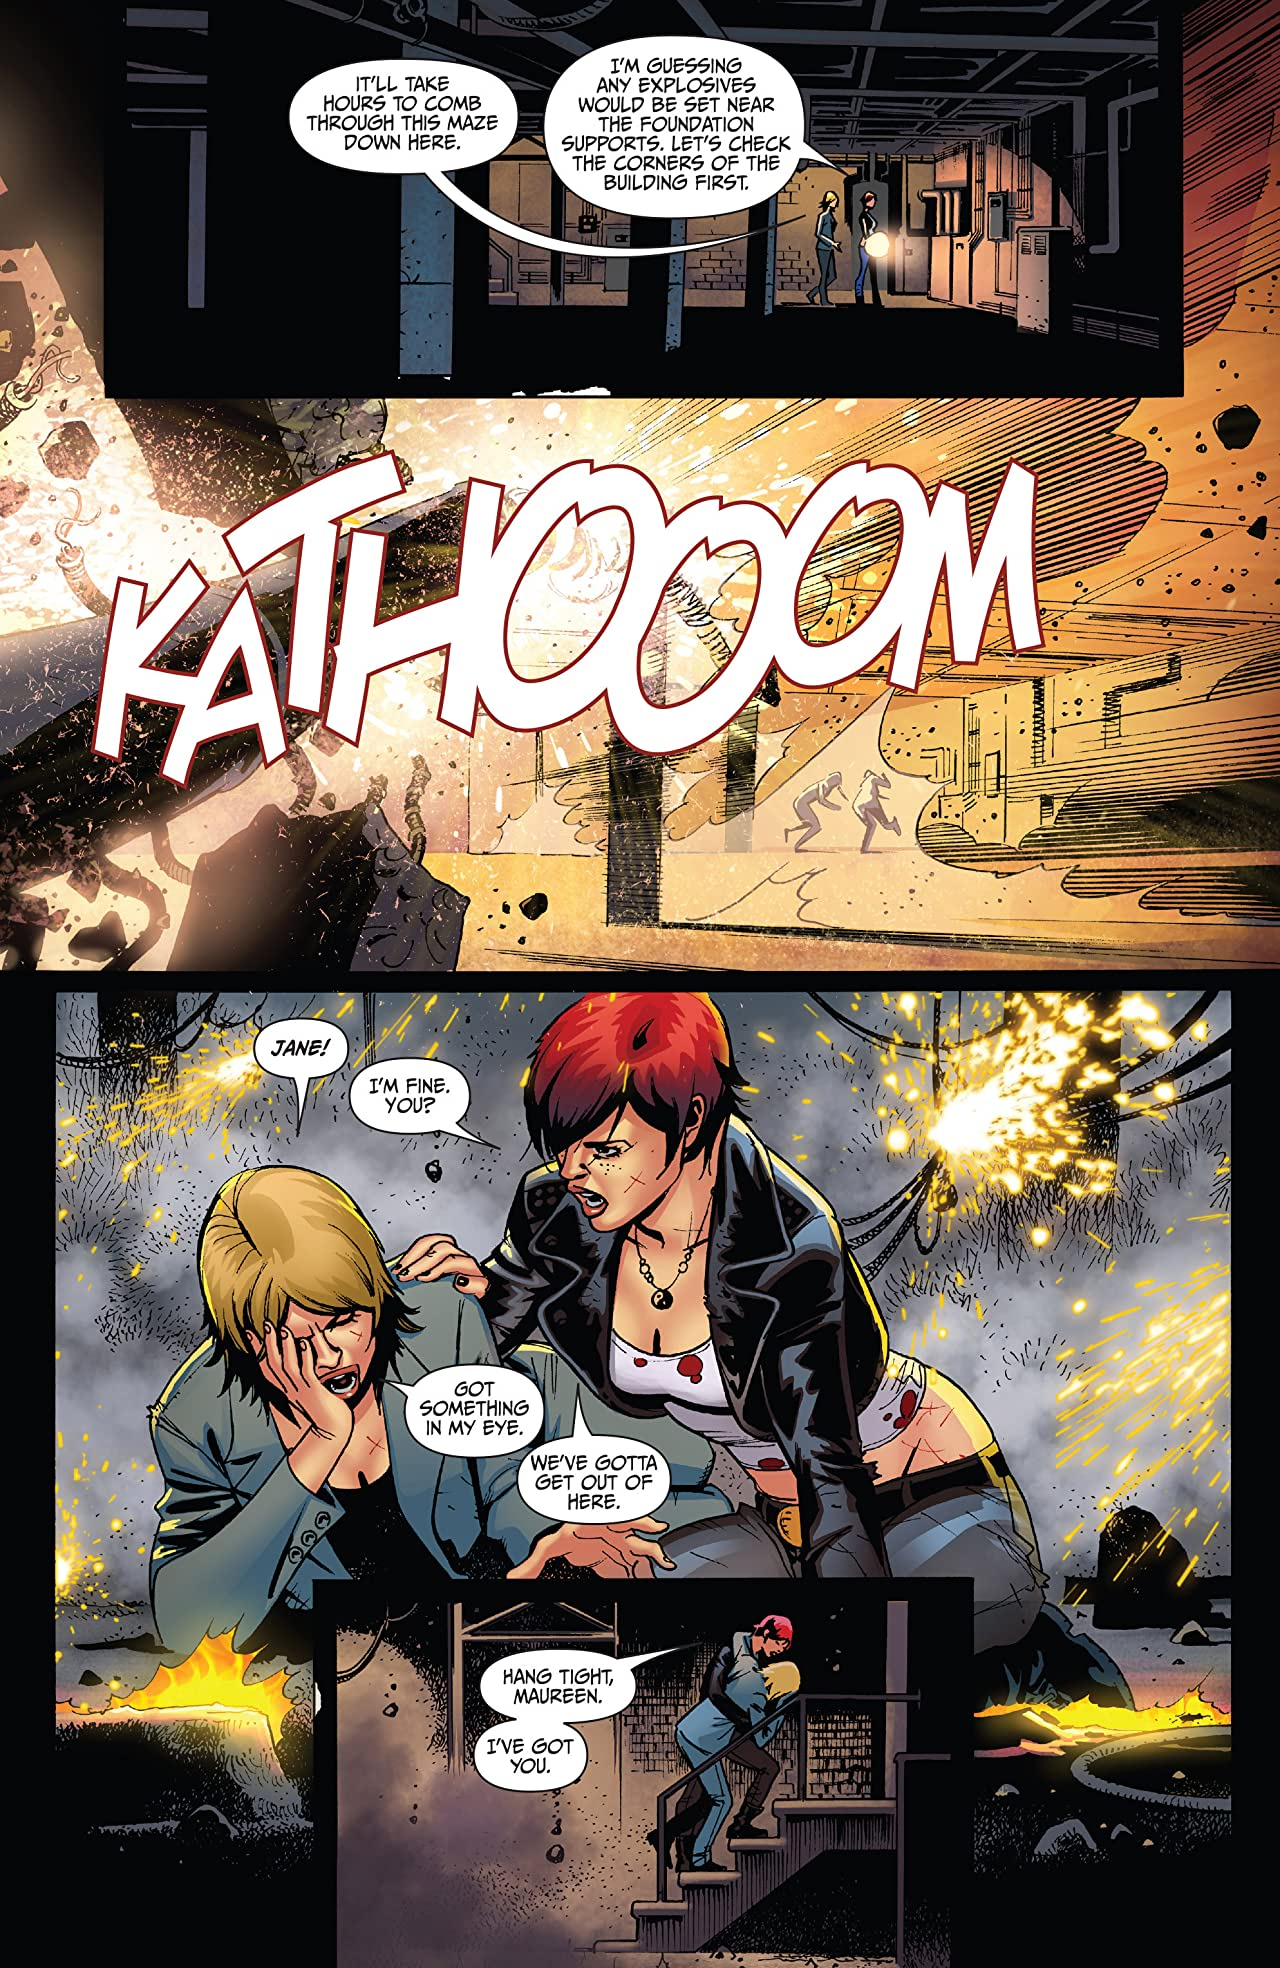 Painkiller Jane: The 22 Brides #2 (of 3)